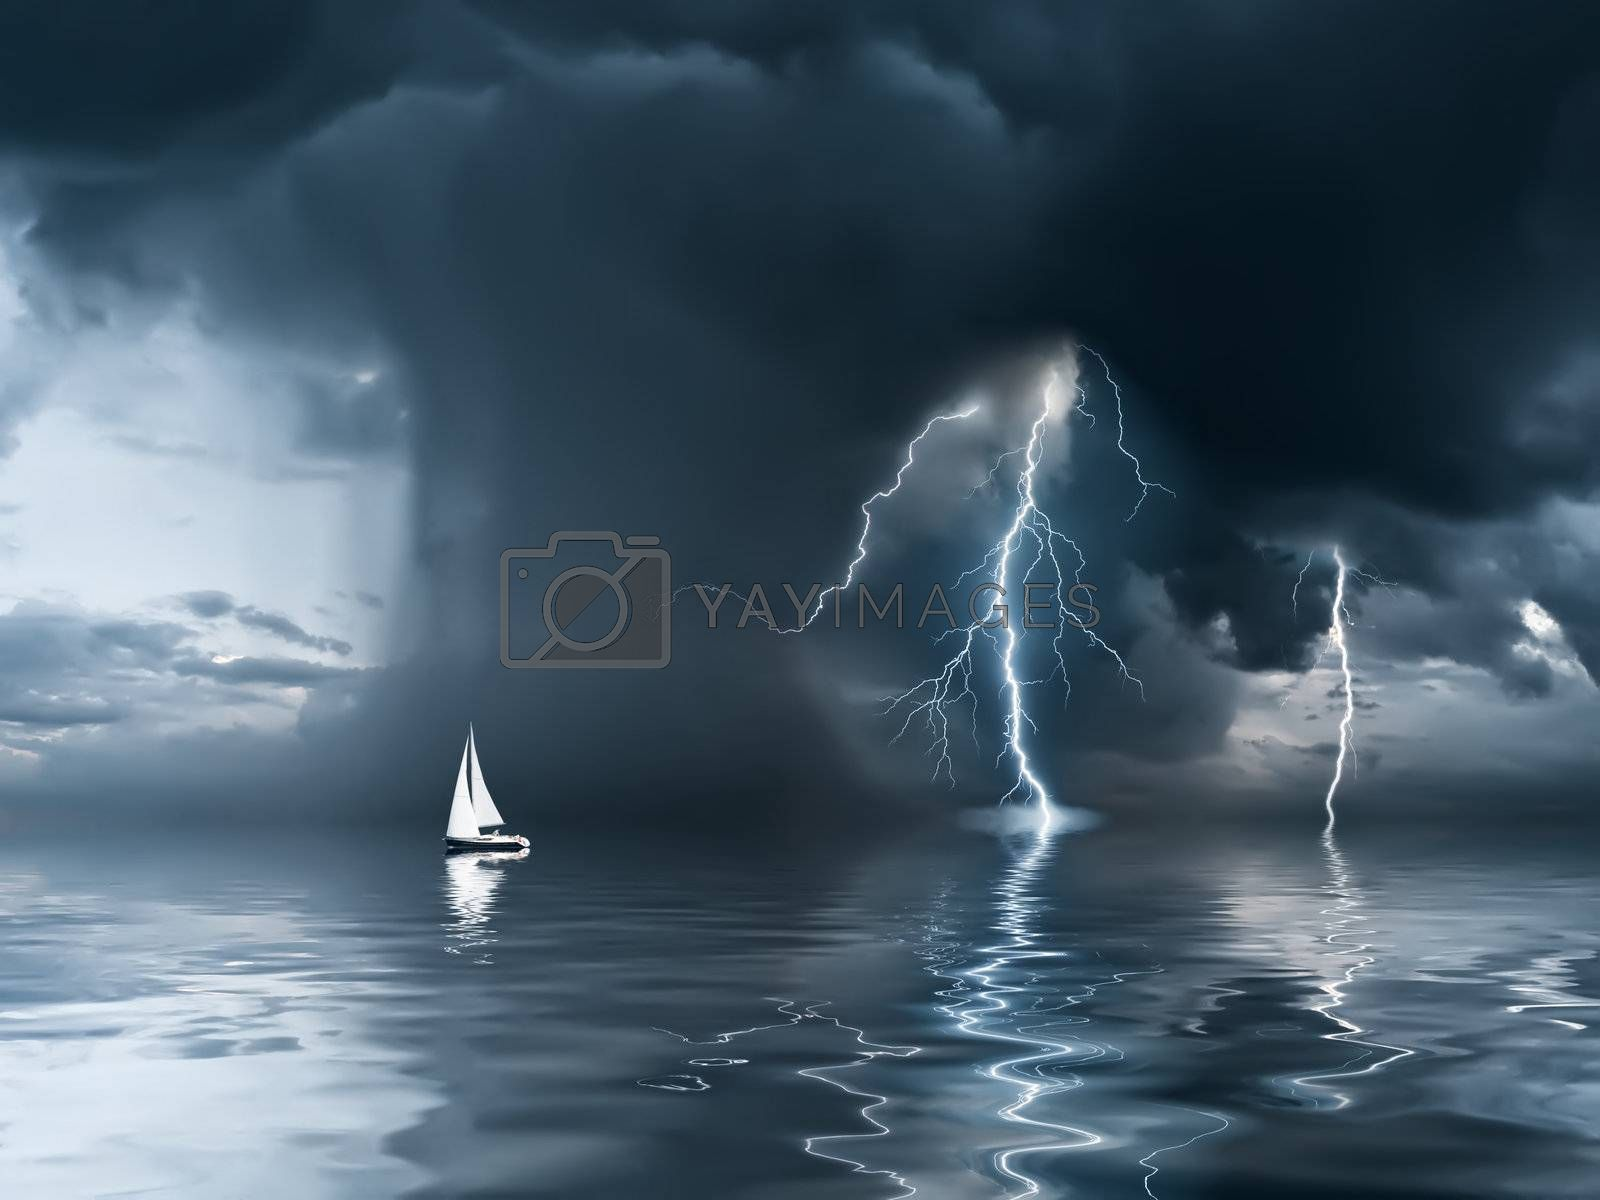 Yacht at the ocean, comes nearer a thunderstorm with rain and lightning on background